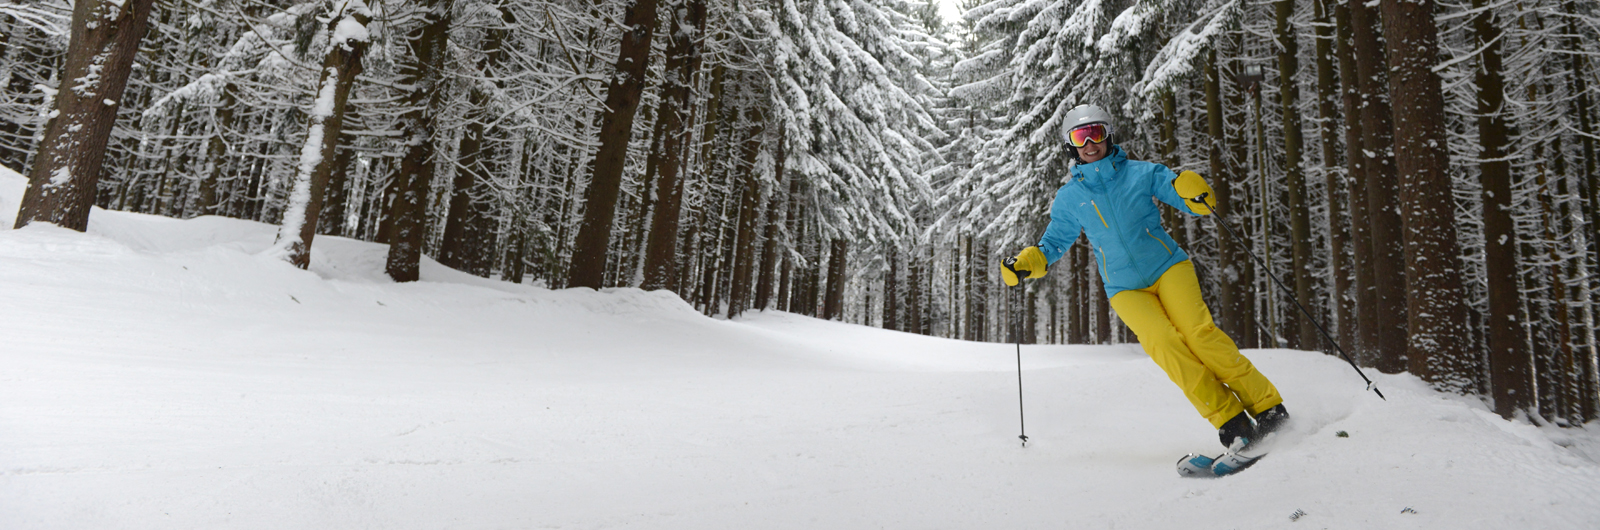 Woman skiing among snowy trees